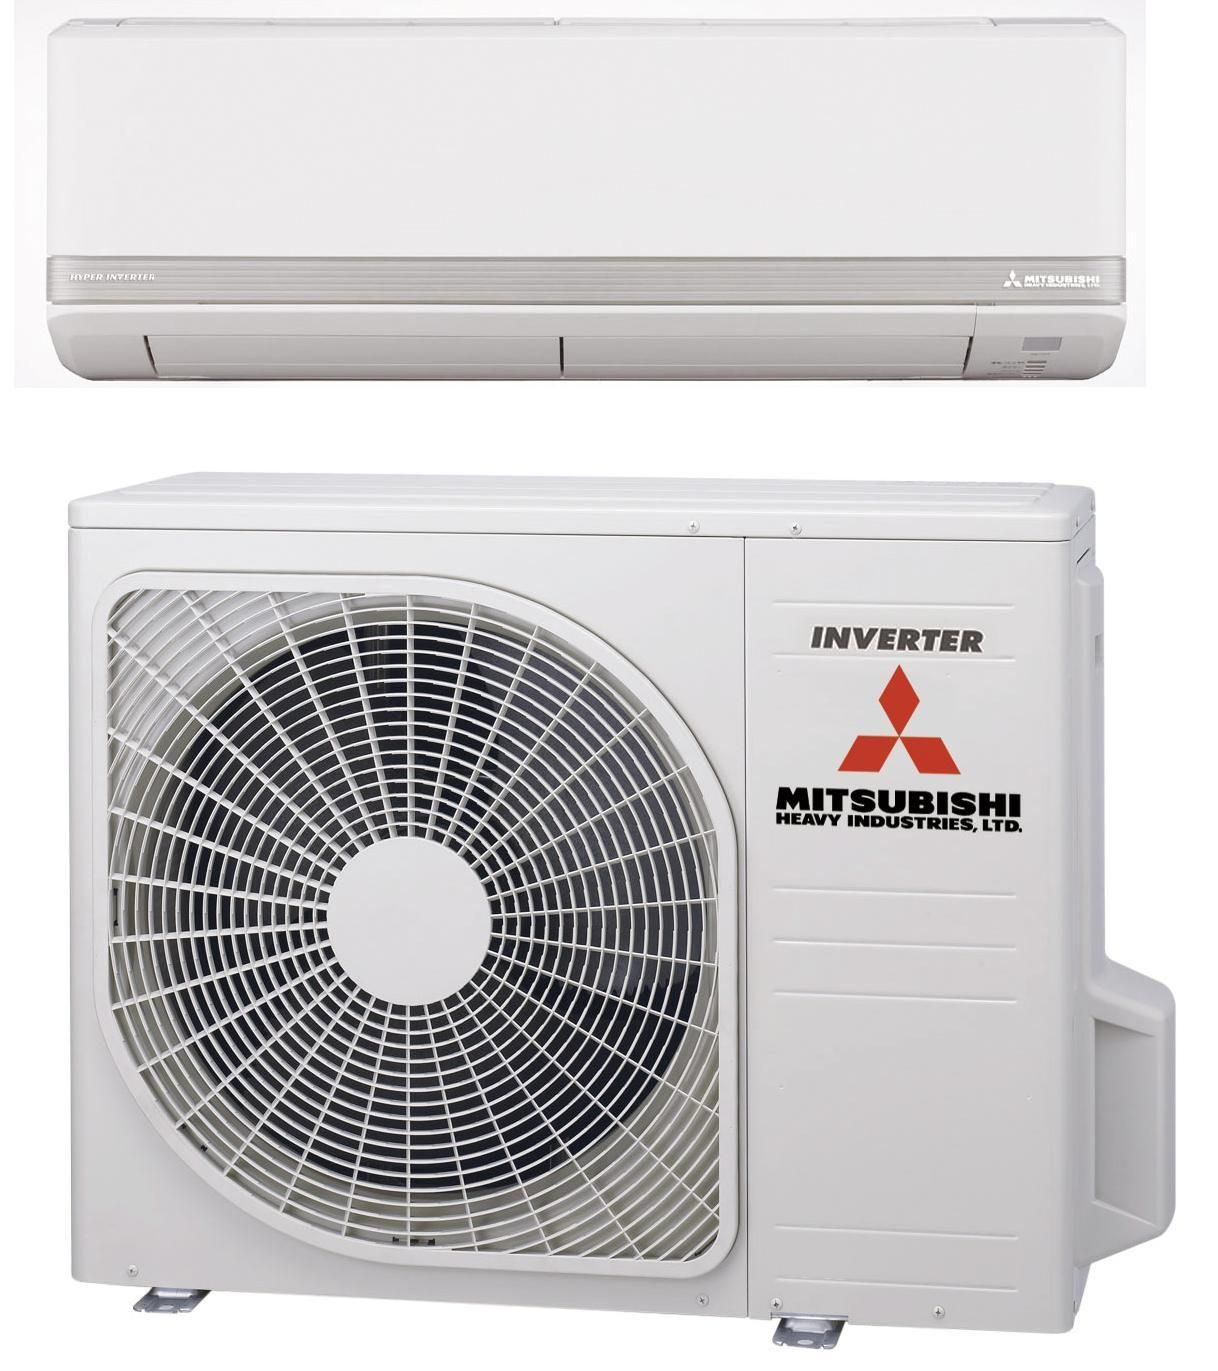 Awsome Air Conditions Mitsubishi air conditioner, Air